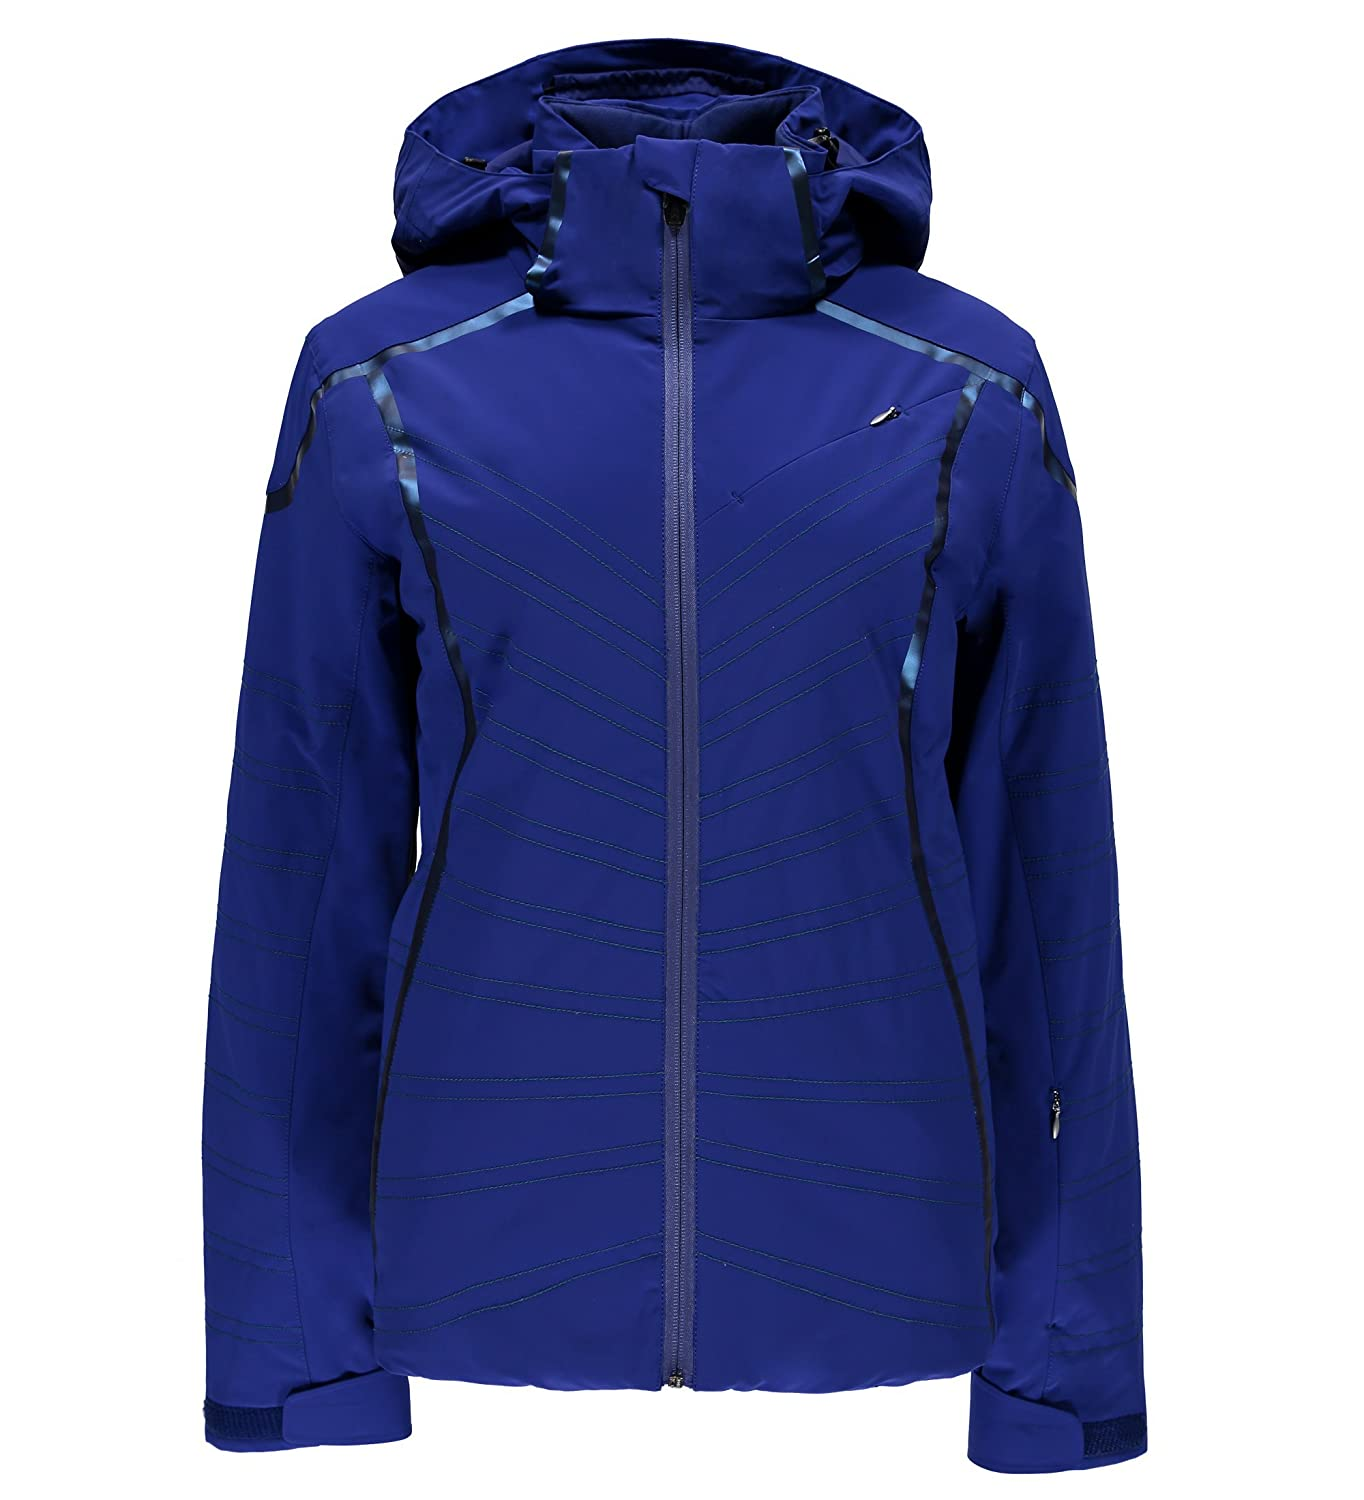 05155000b79e Amazon.com  Spyder Womens Thera Jacket  Clothing